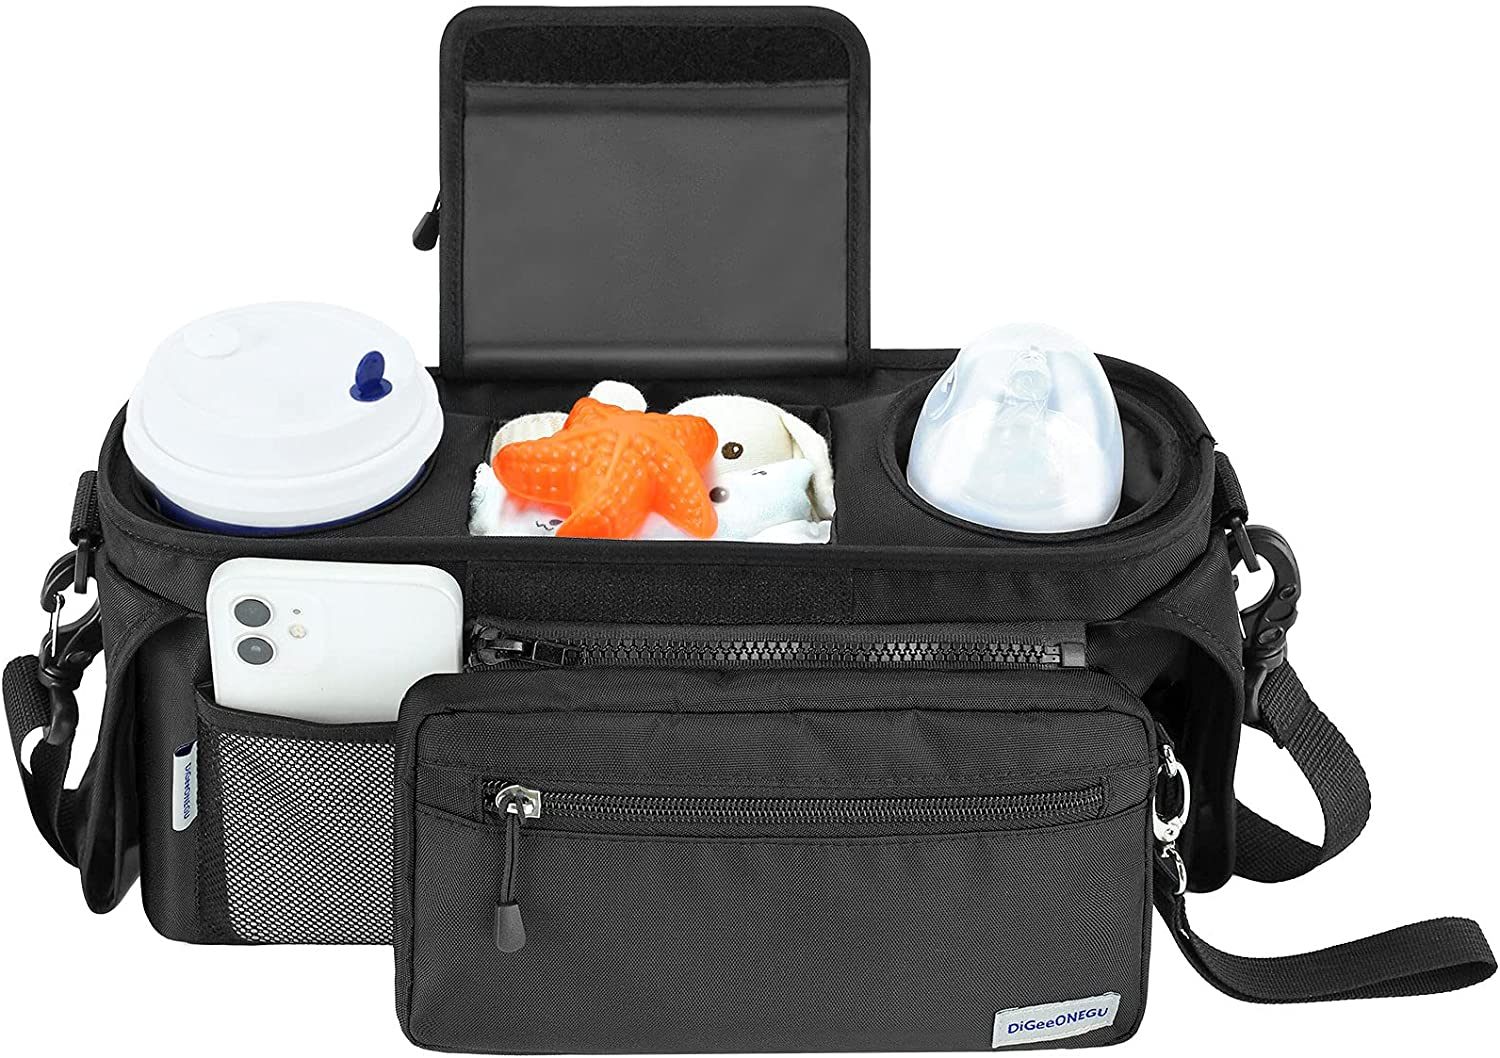 Universal Stroller Organizer with Insulated Cup Holder, Non-Slip Strap & Detachable Wristlet Wallet,Equipped with Shoulder Strap,Diaper Wet Wipe Storage, Reasonable Design Fit All Strollers